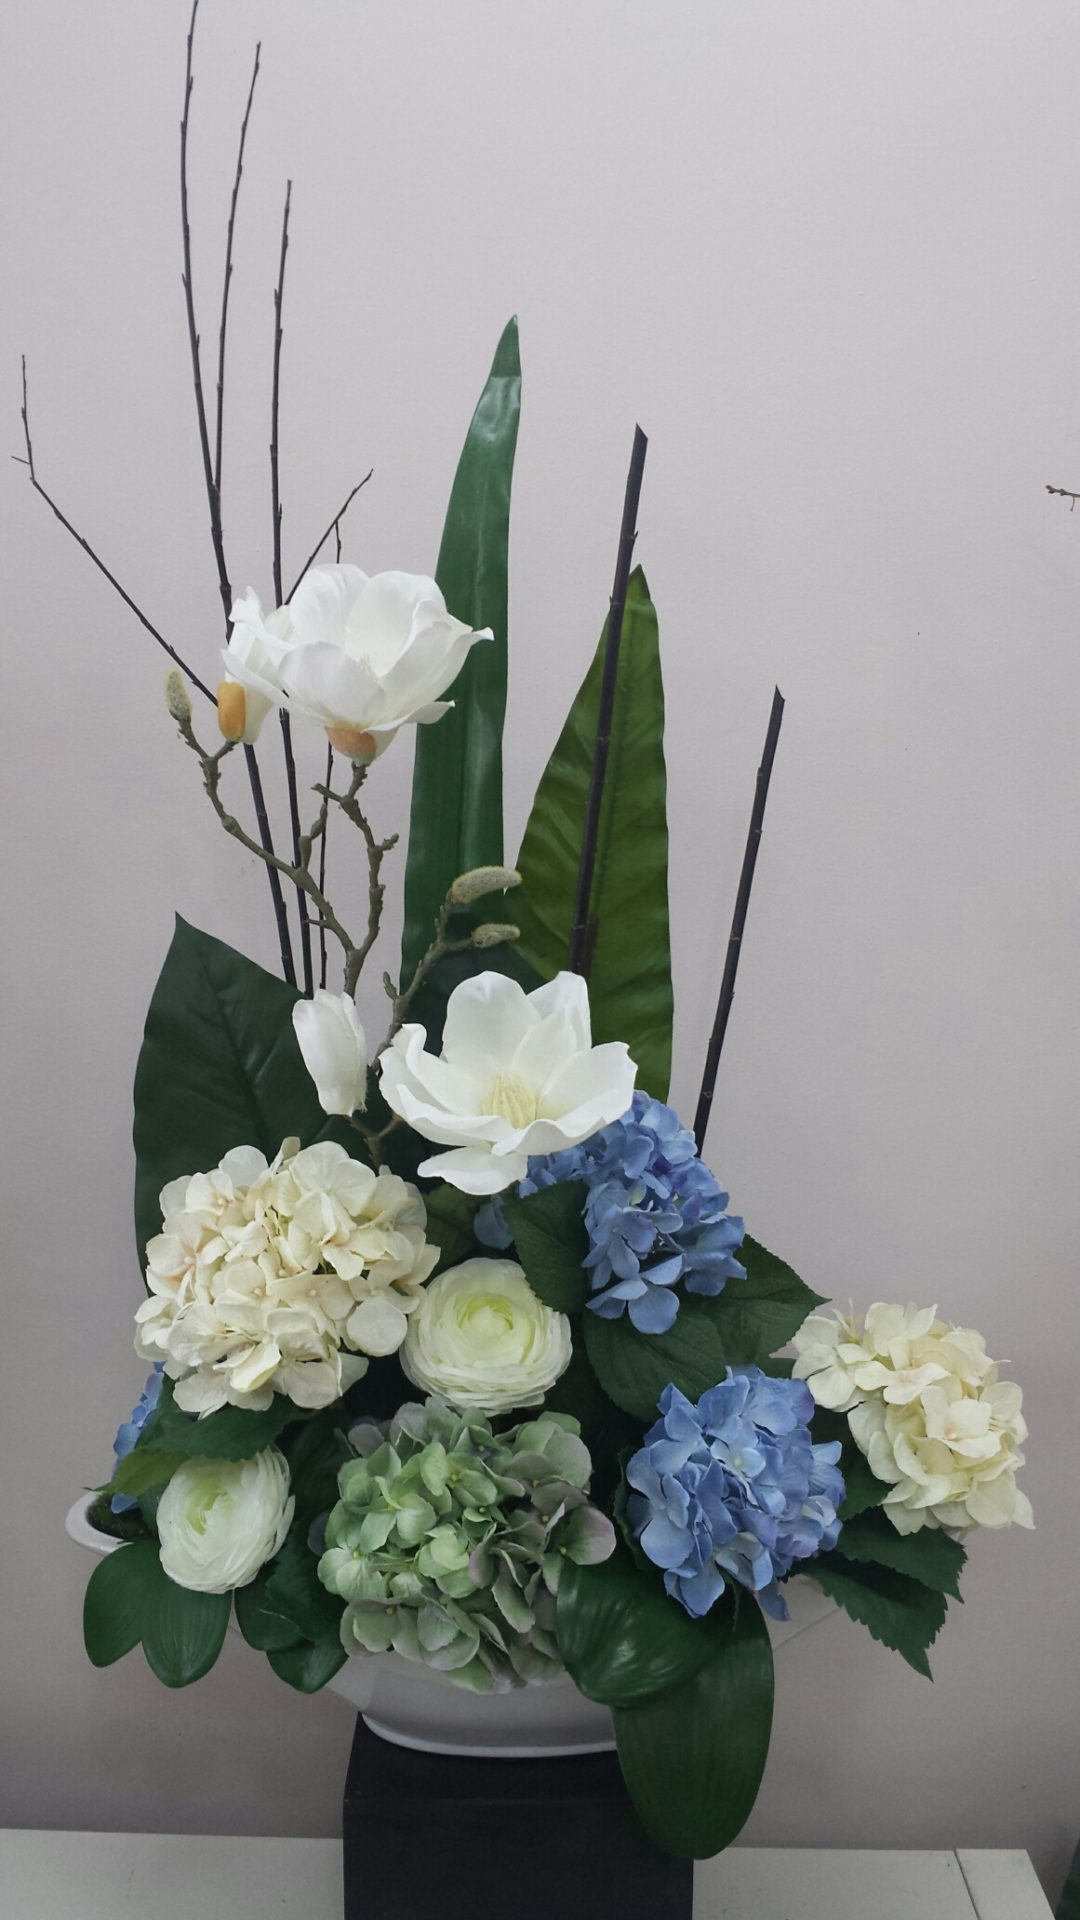 White Magnolia and Hydrangea